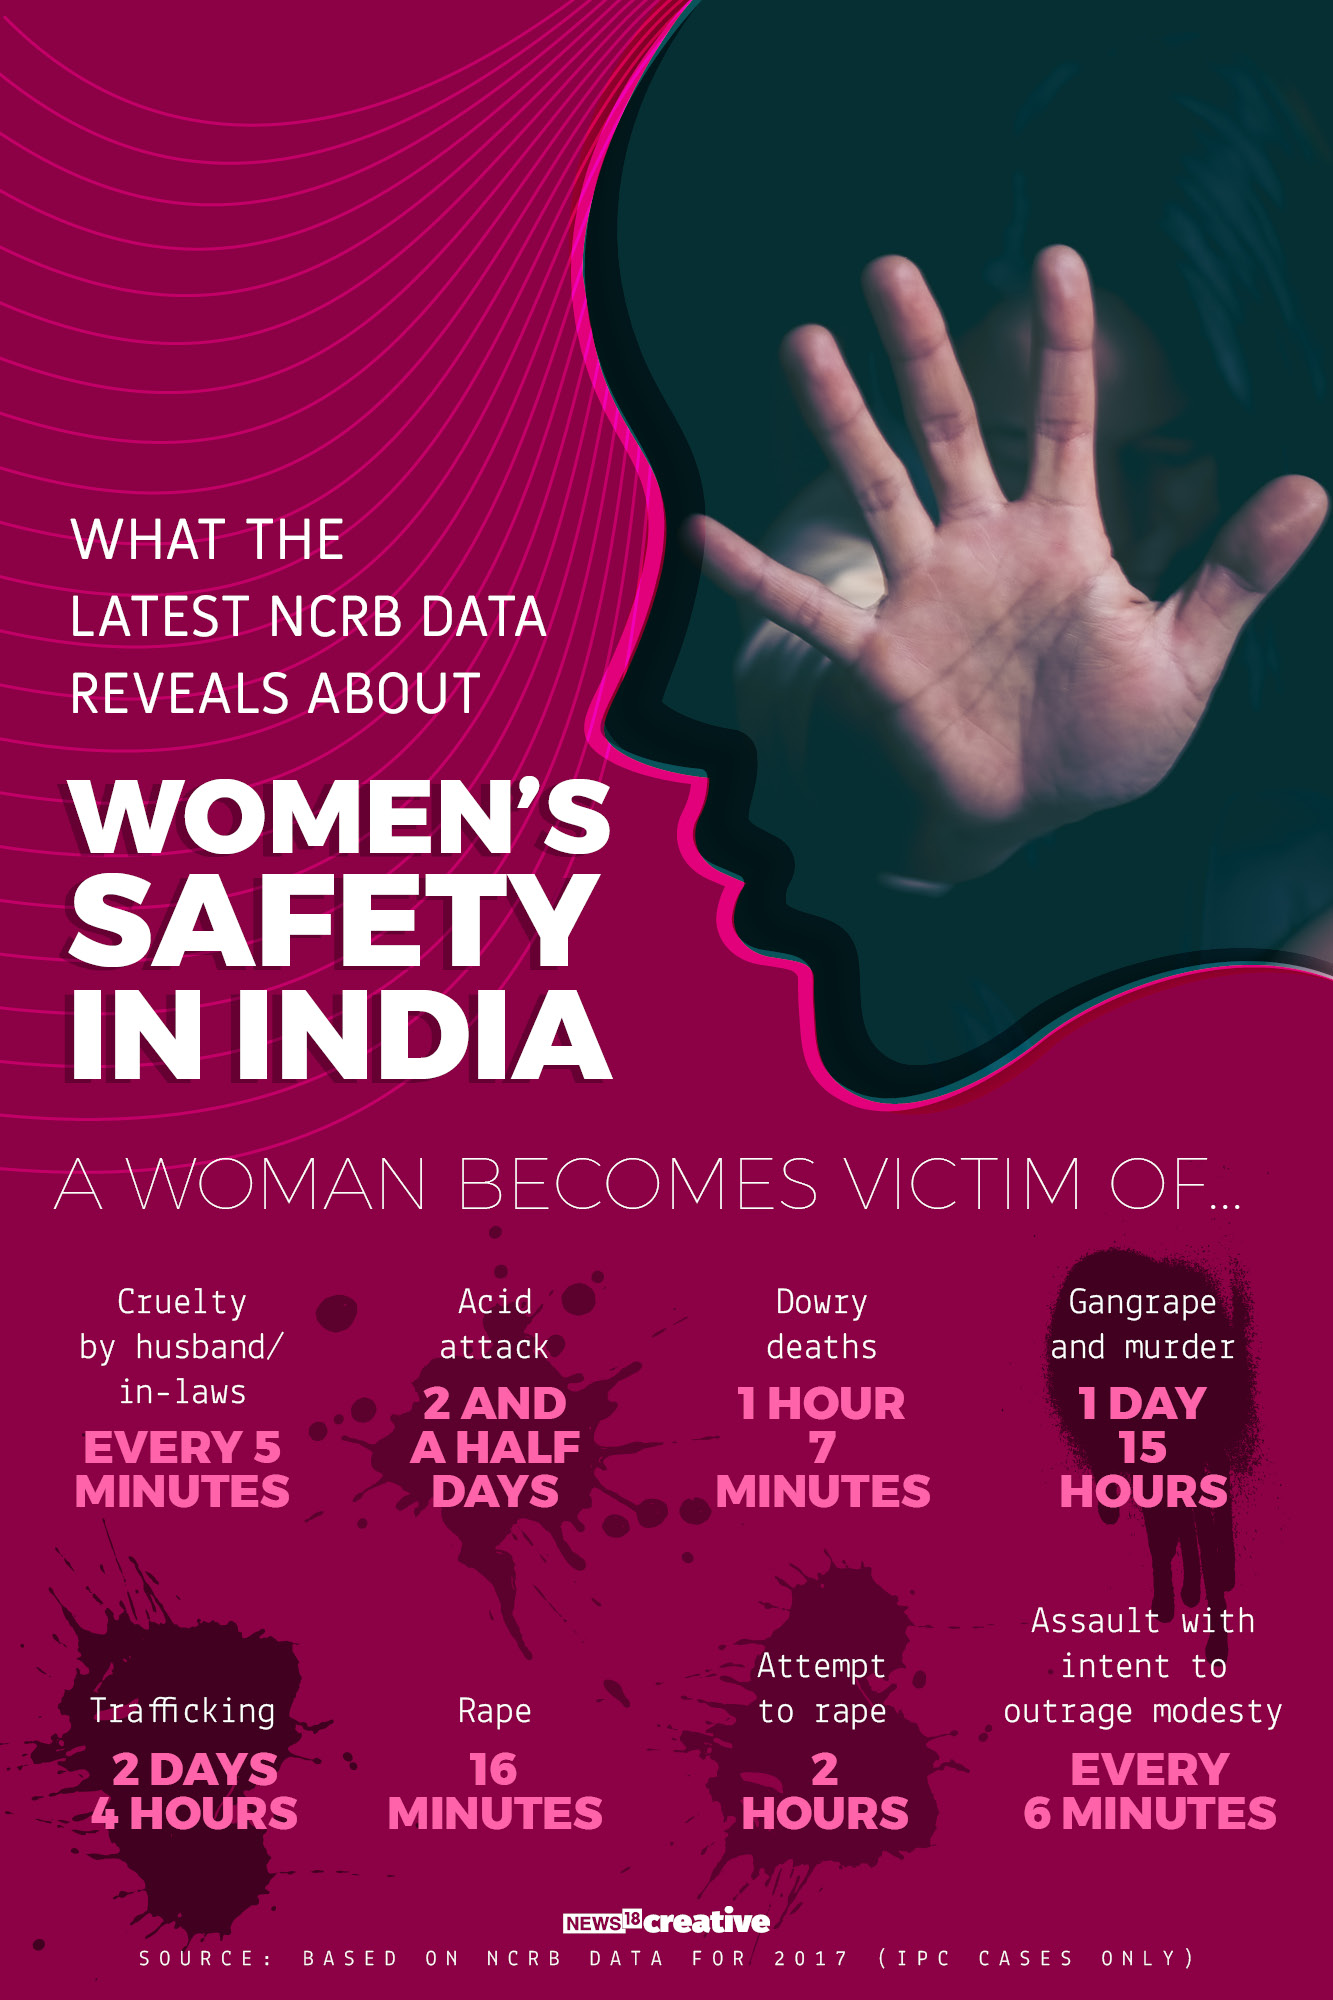 WOMEN'S SAFETY IN INDIA (1)